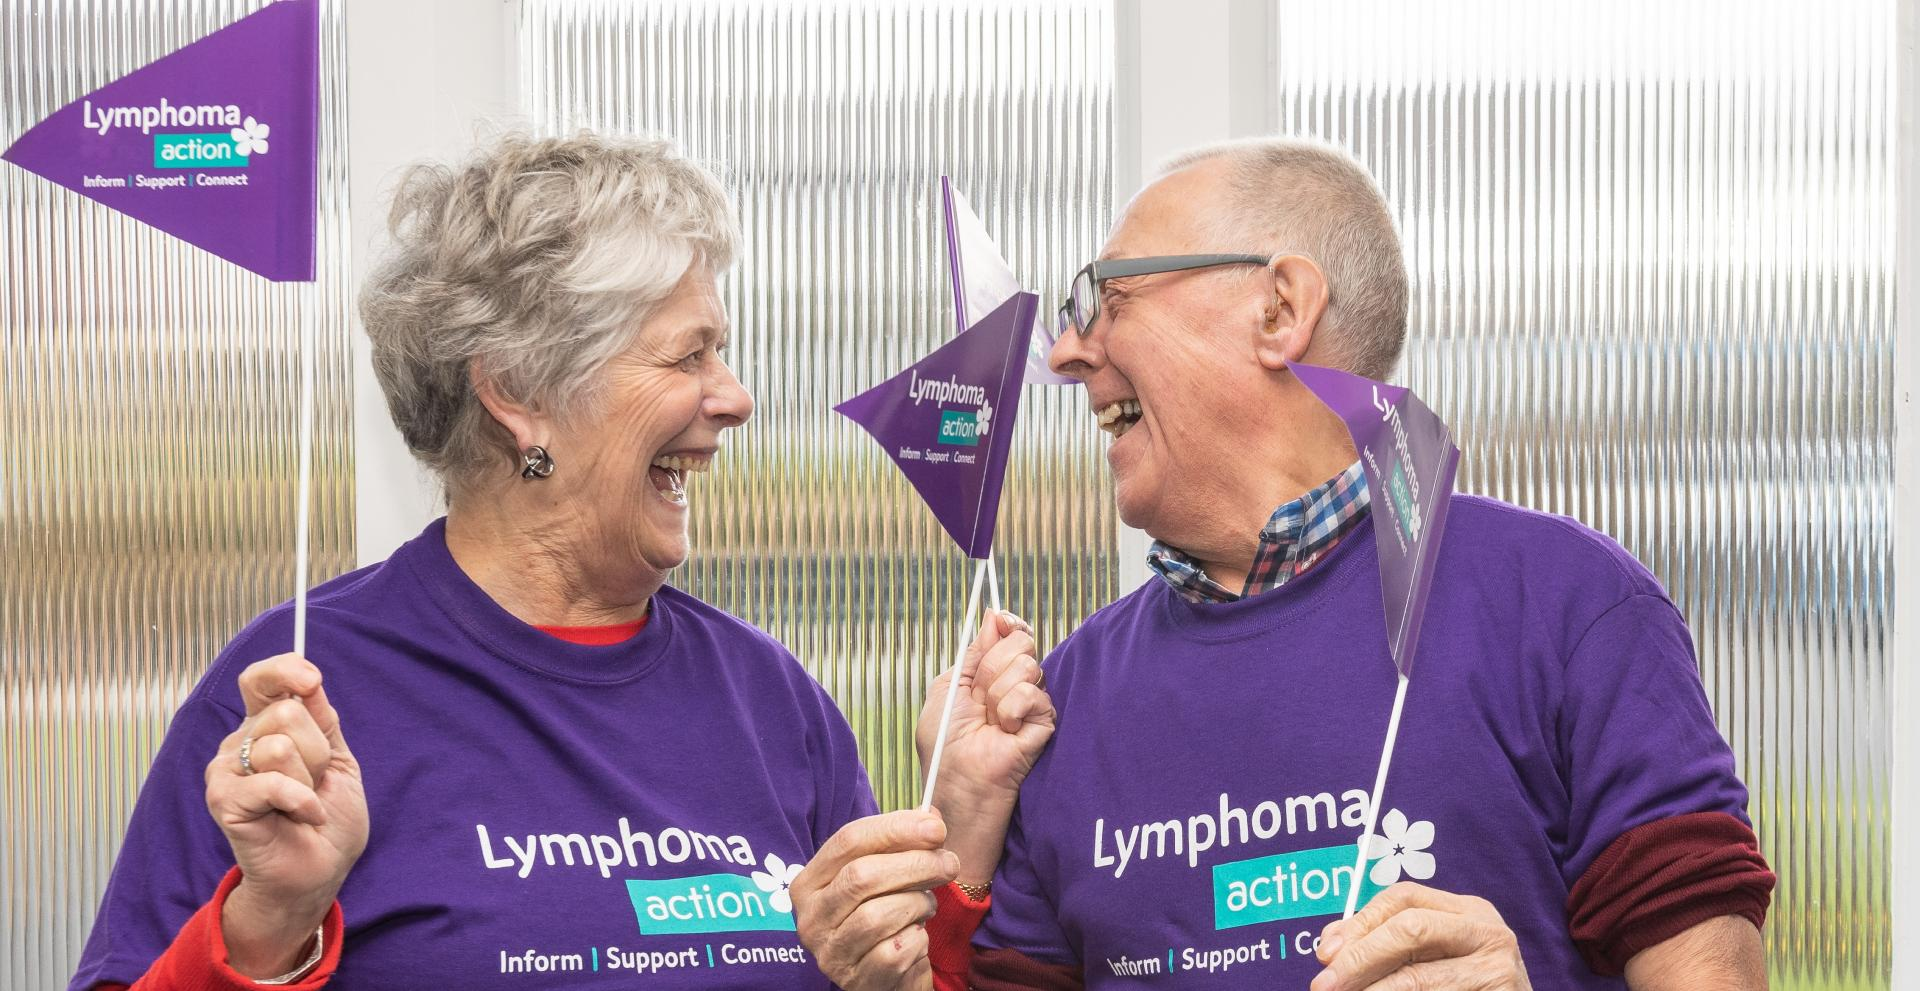 Female & male with Lymphoma Action flags